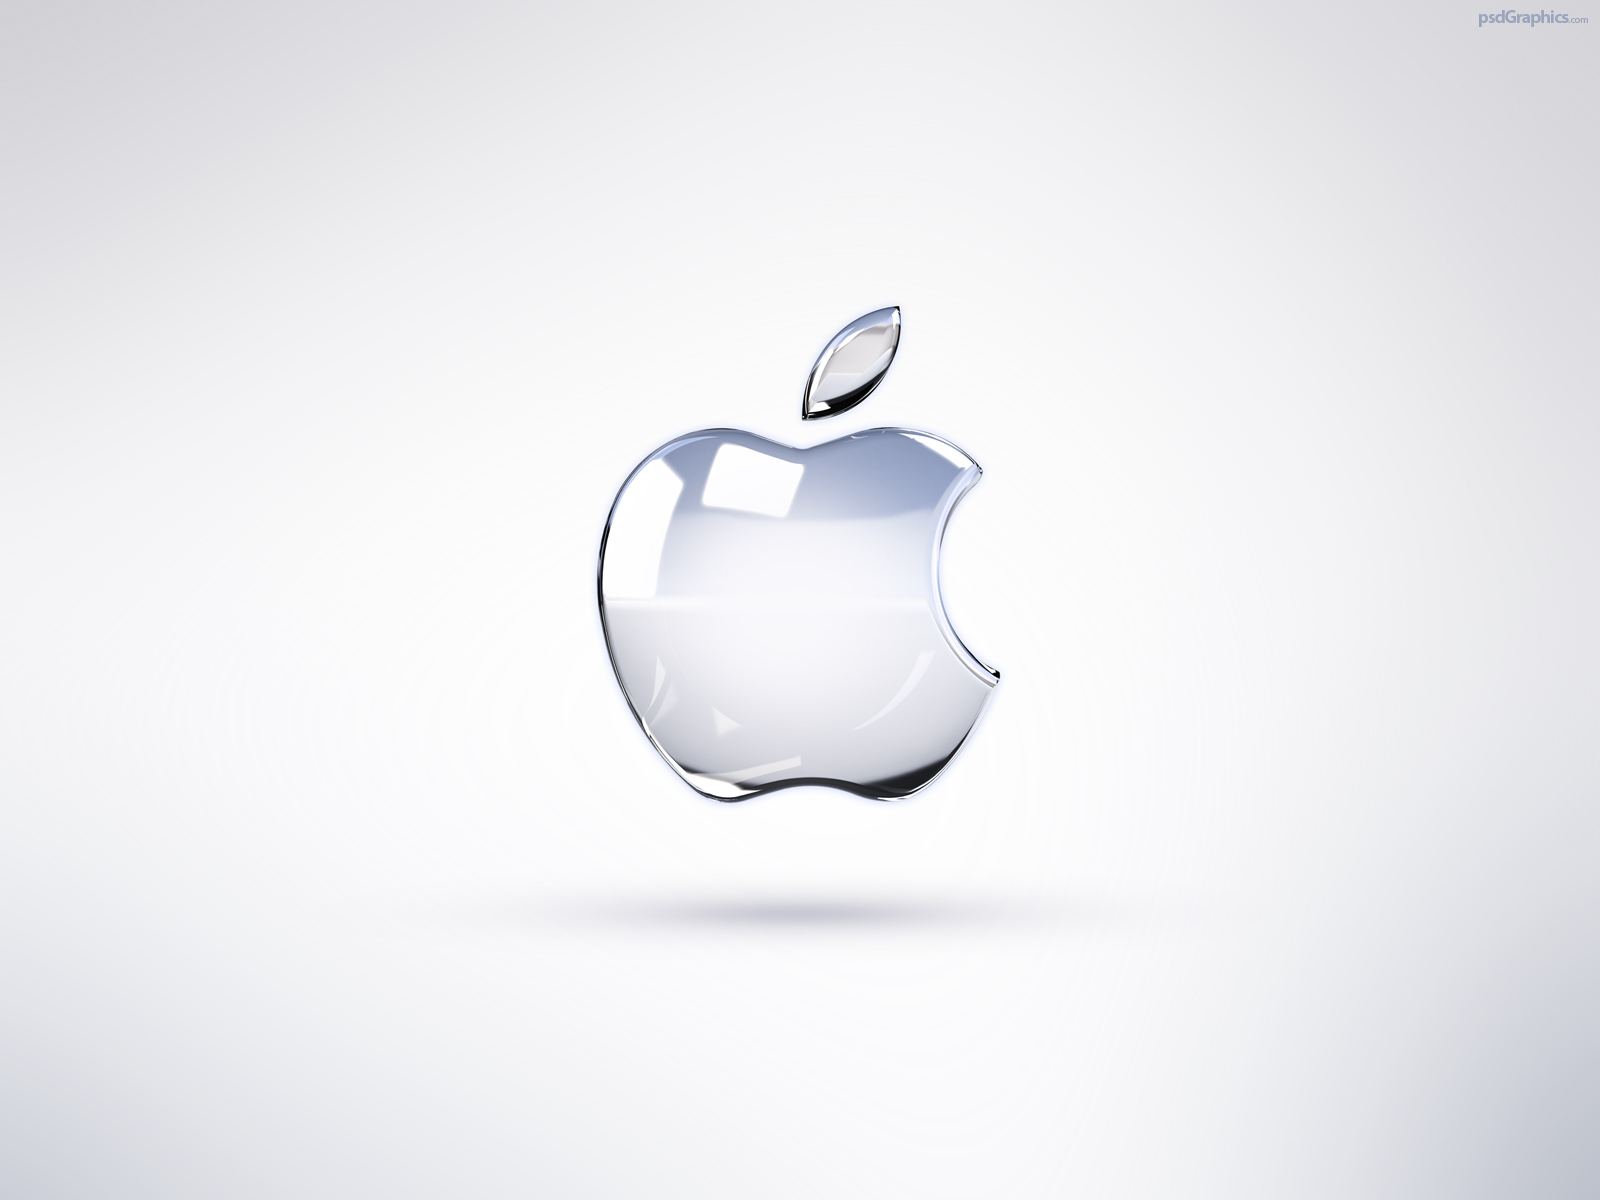 Great Wallpaper Macbook Background - apple-logo-wallpaper-1600x1200  You Should Have_803376.jpg